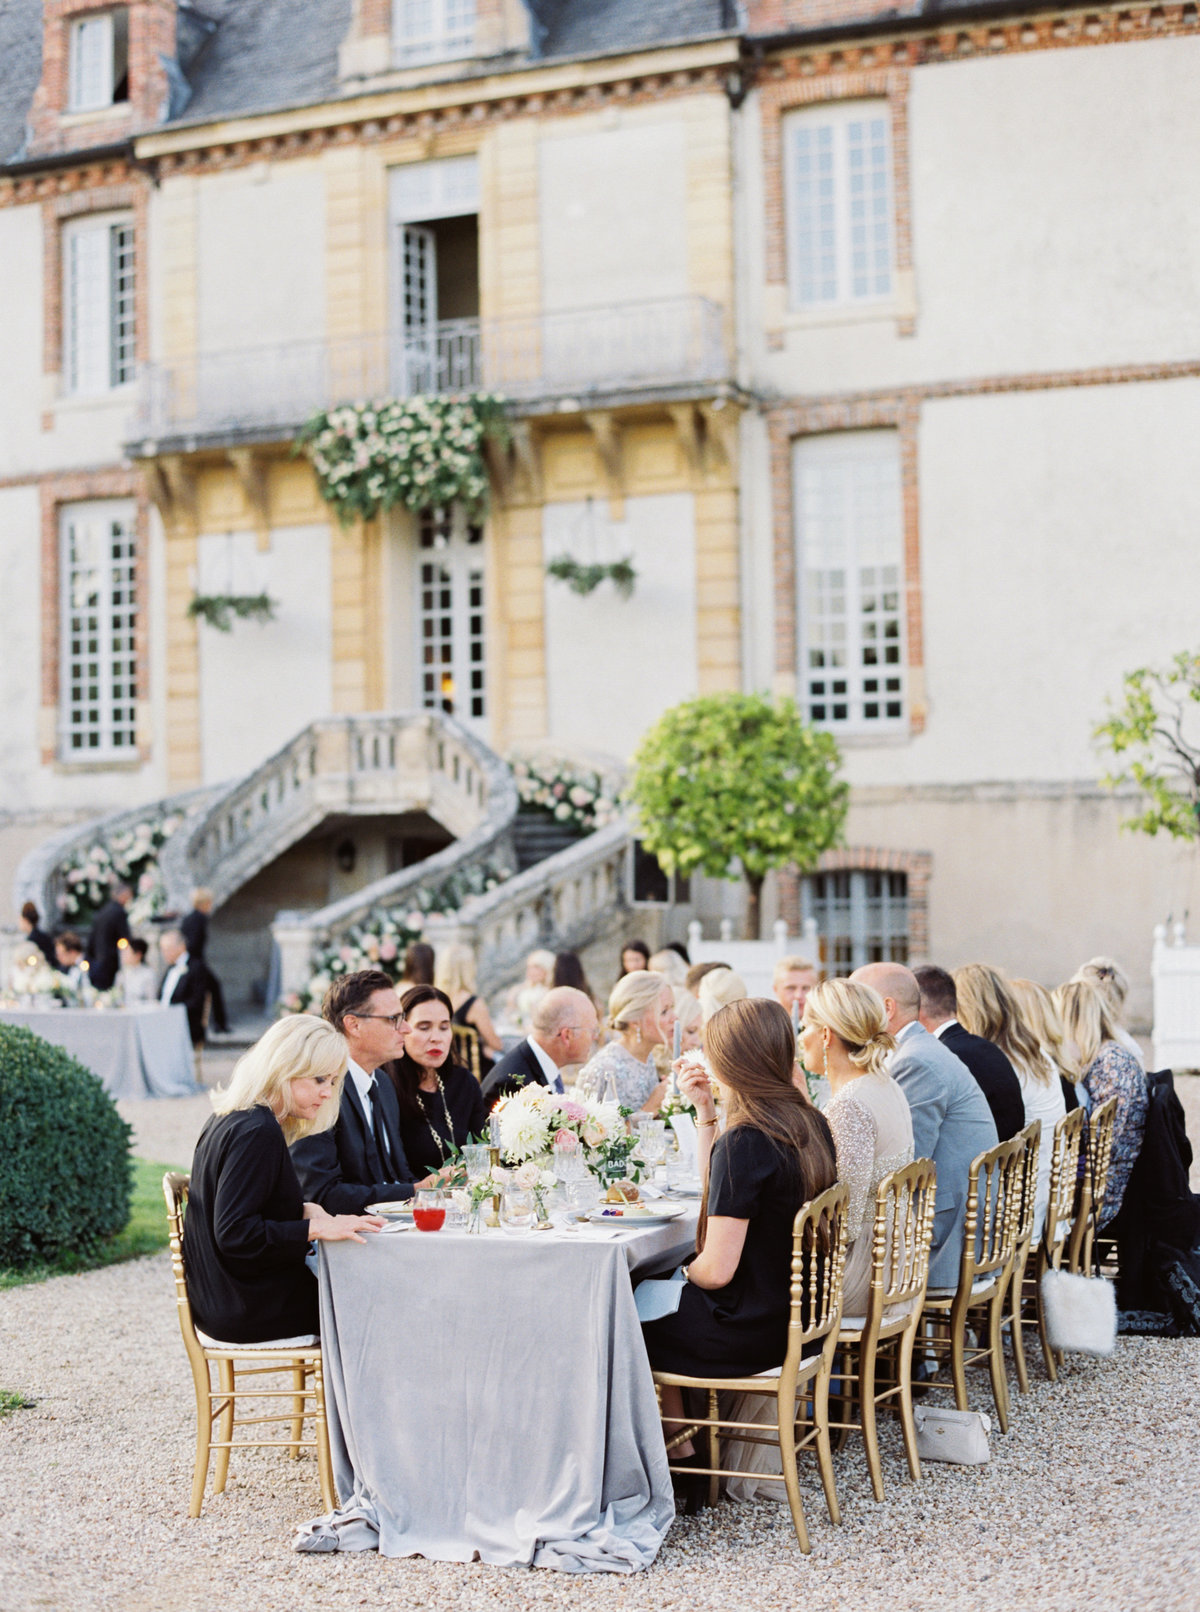 Paris France Wedding - Mary Claire Photography-48